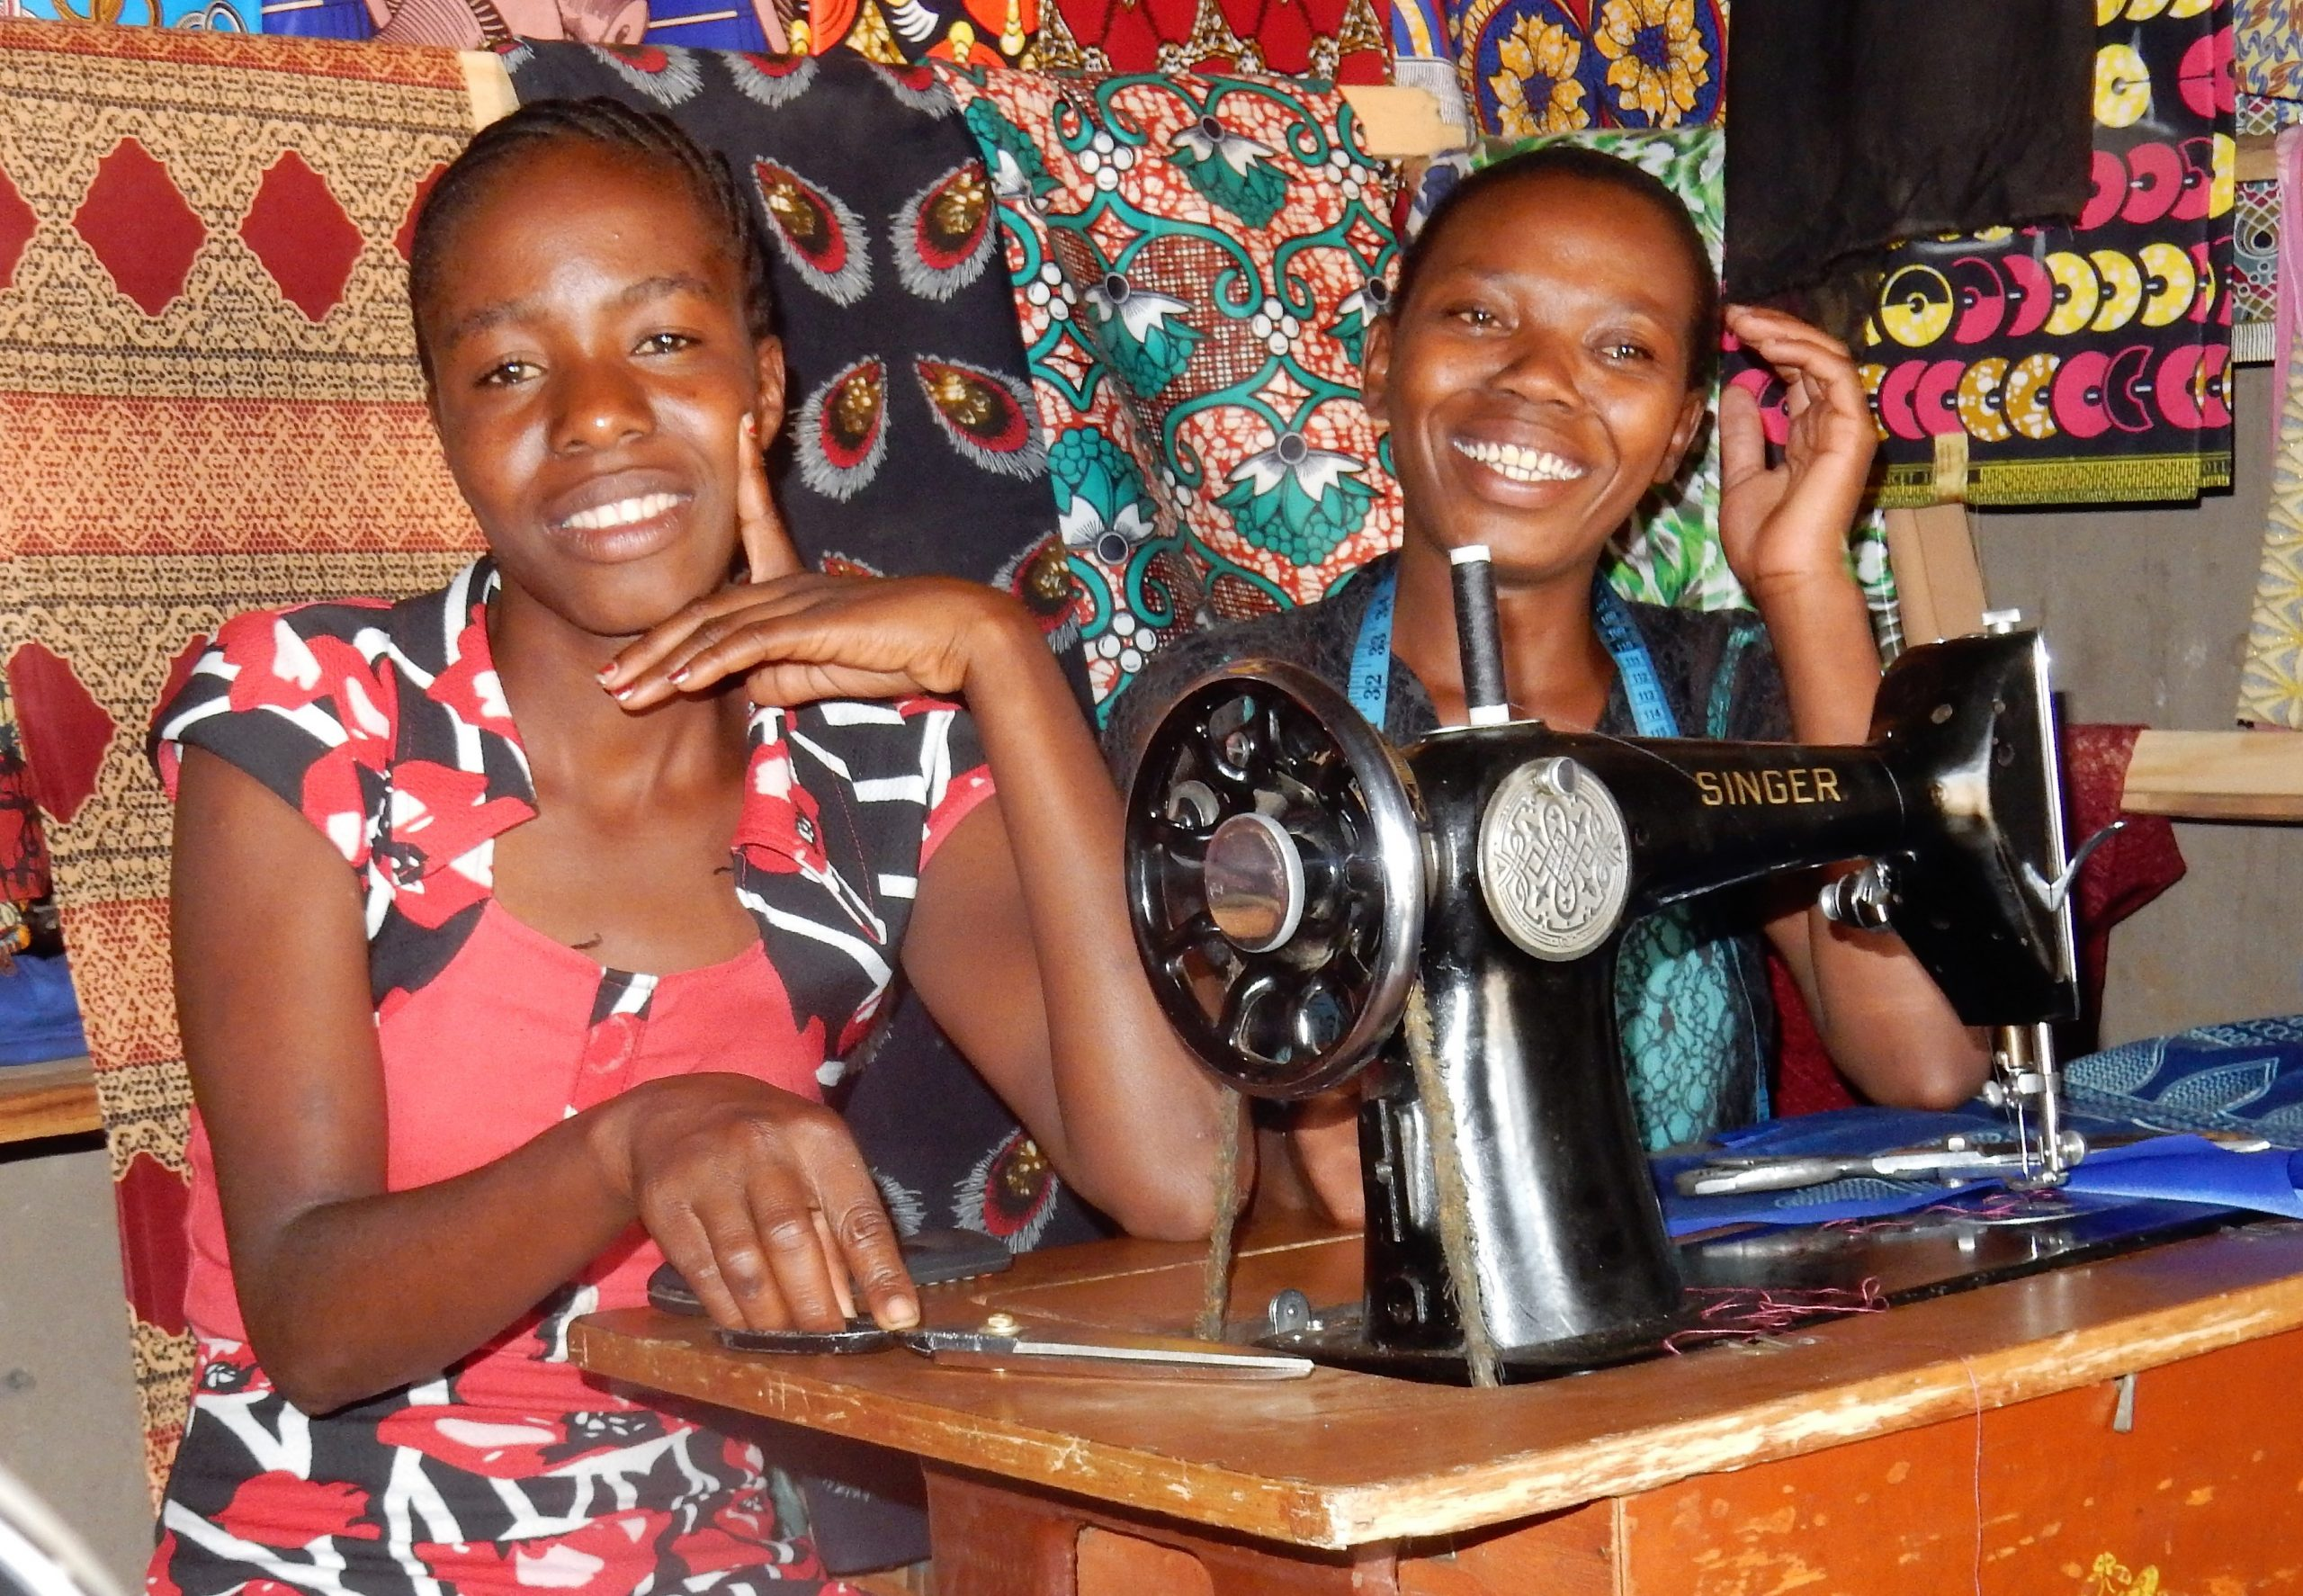 Two female tailors sit smiling behind a sewing machine